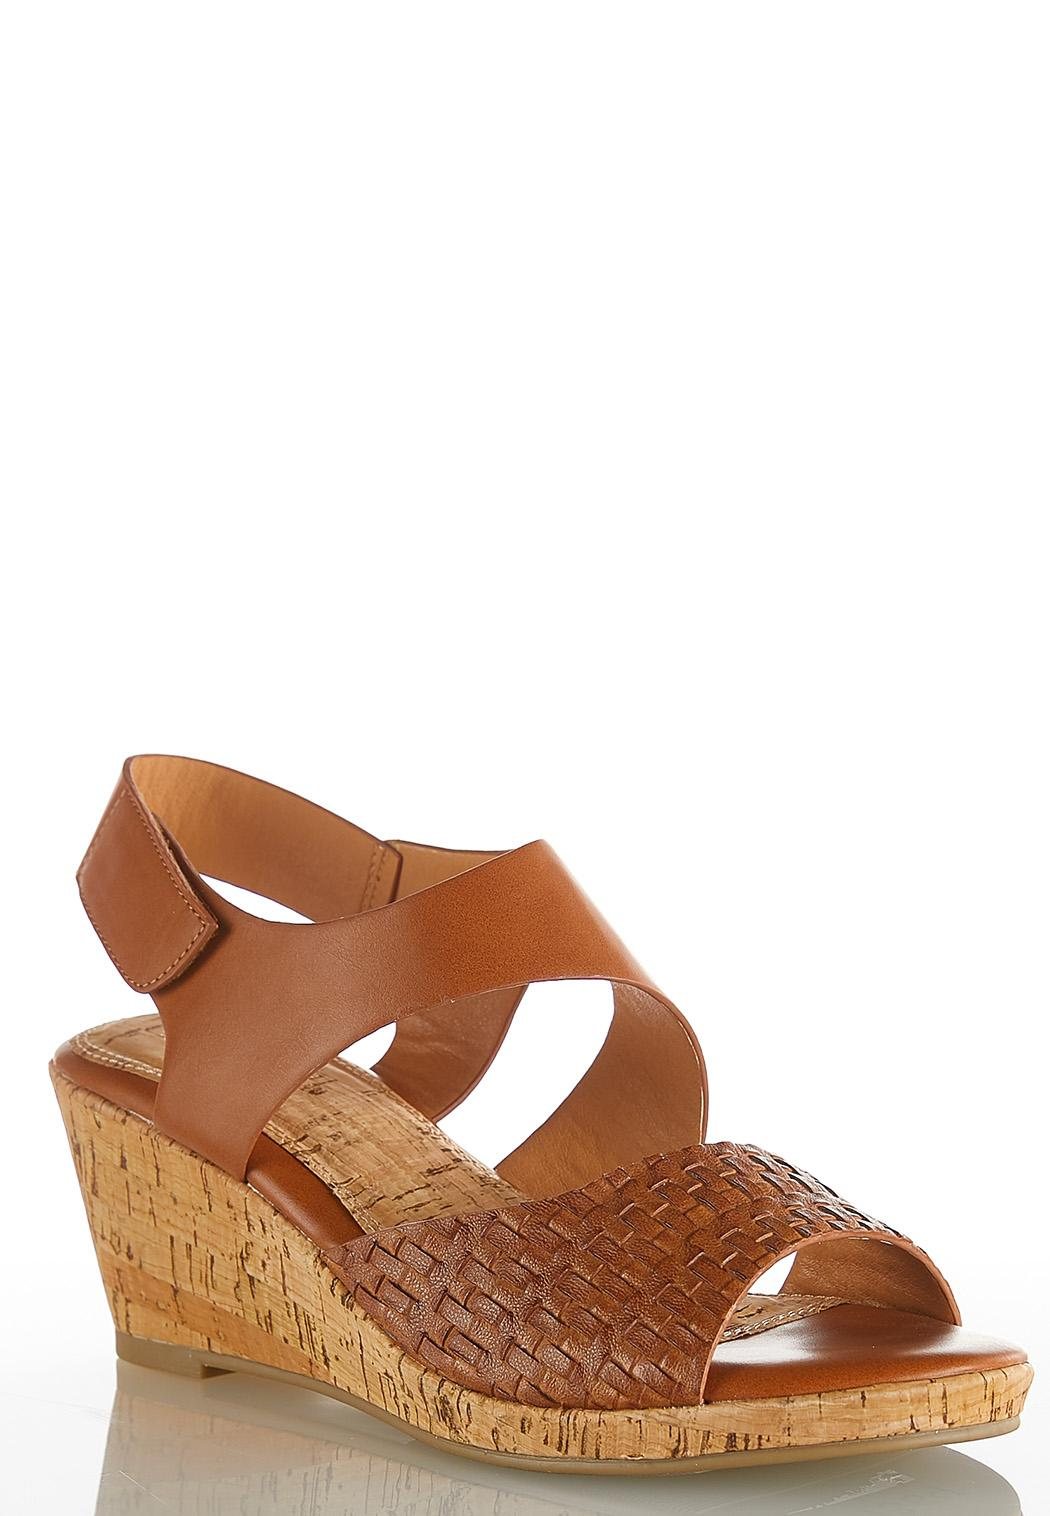 0f7d0828b7a Wide Width Woven Vamp Cork Wedges Heels Cato Fashions